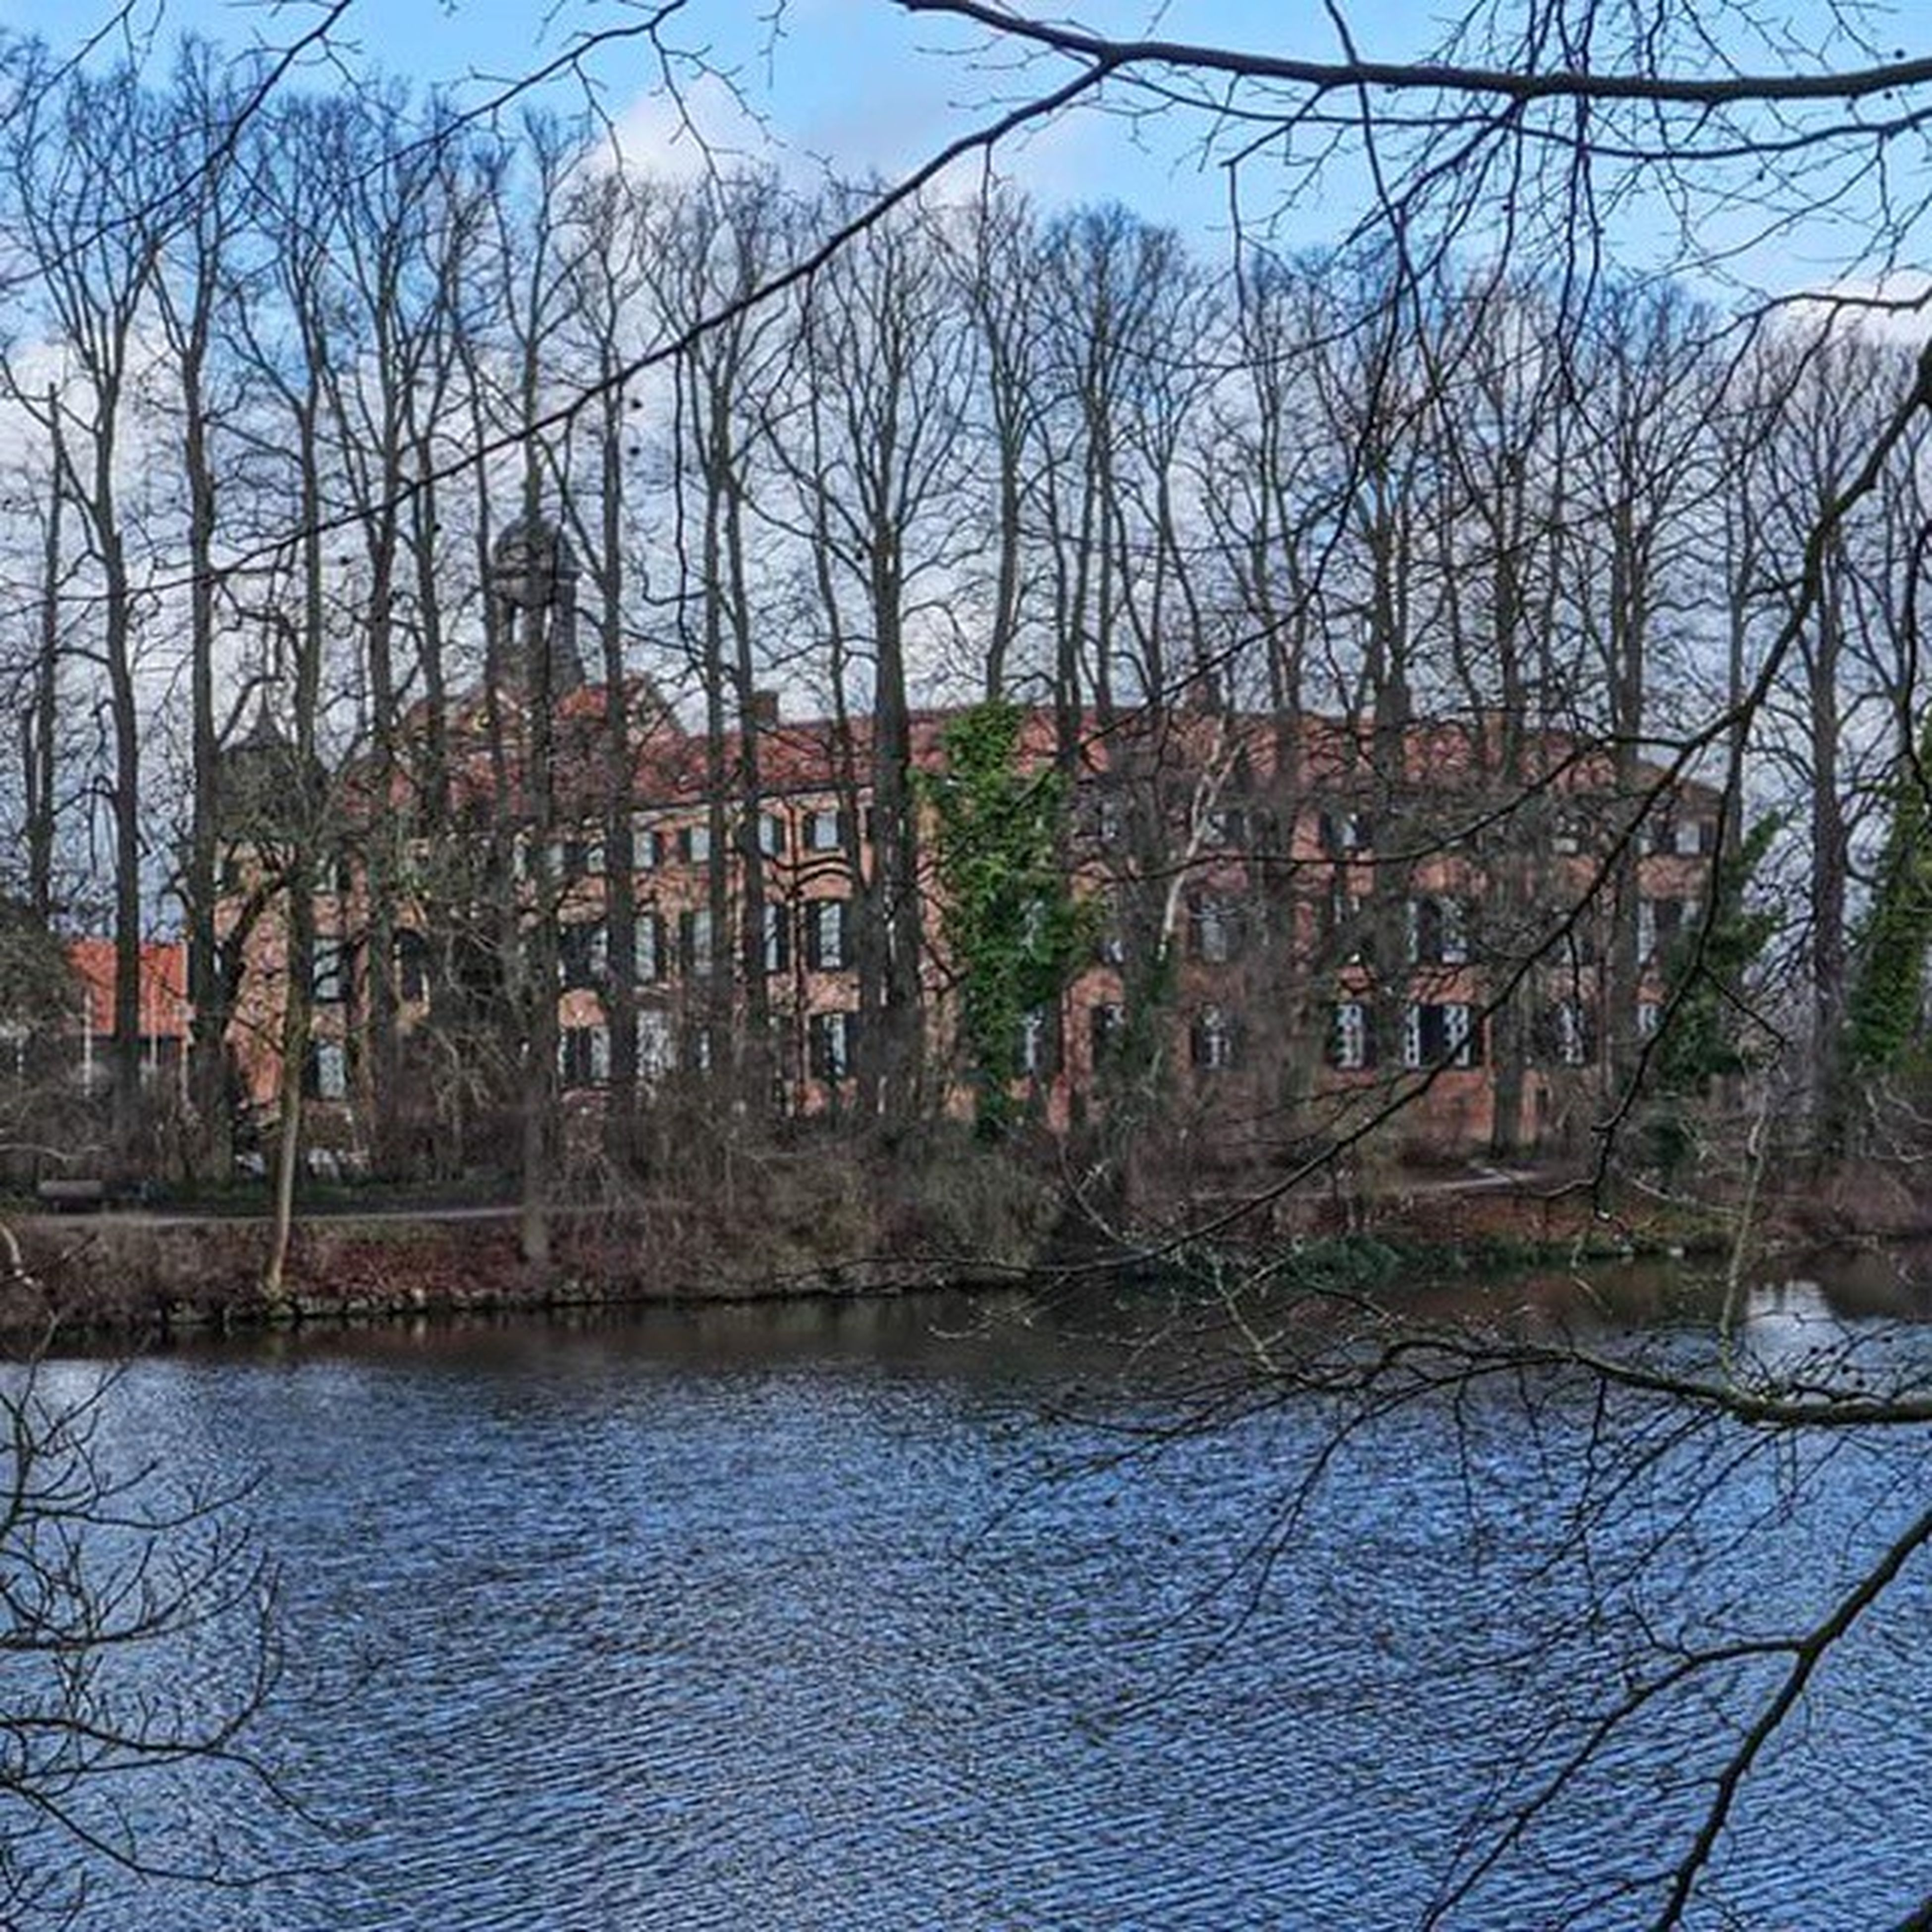 architecture, built structure, building exterior, bare tree, water, tree, reflection, sky, river, lake, house, day, branch, outdoors, waterfront, no people, history, city, residential building, nature